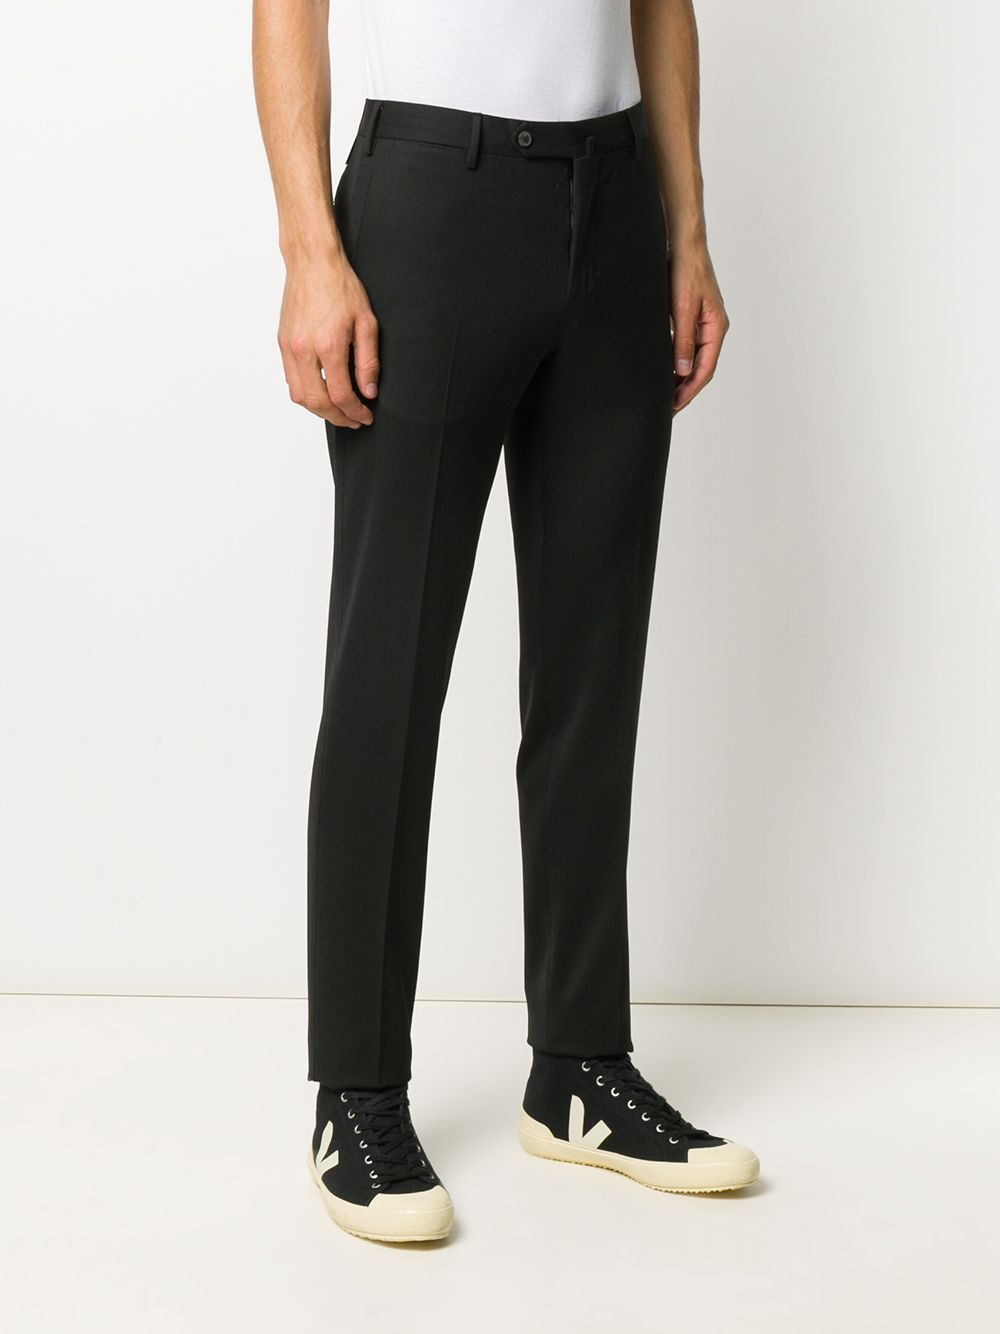 Black skinny trousers in polyester and stretch wool  PT01 |  | COKSTVZ00TVL-PO360990